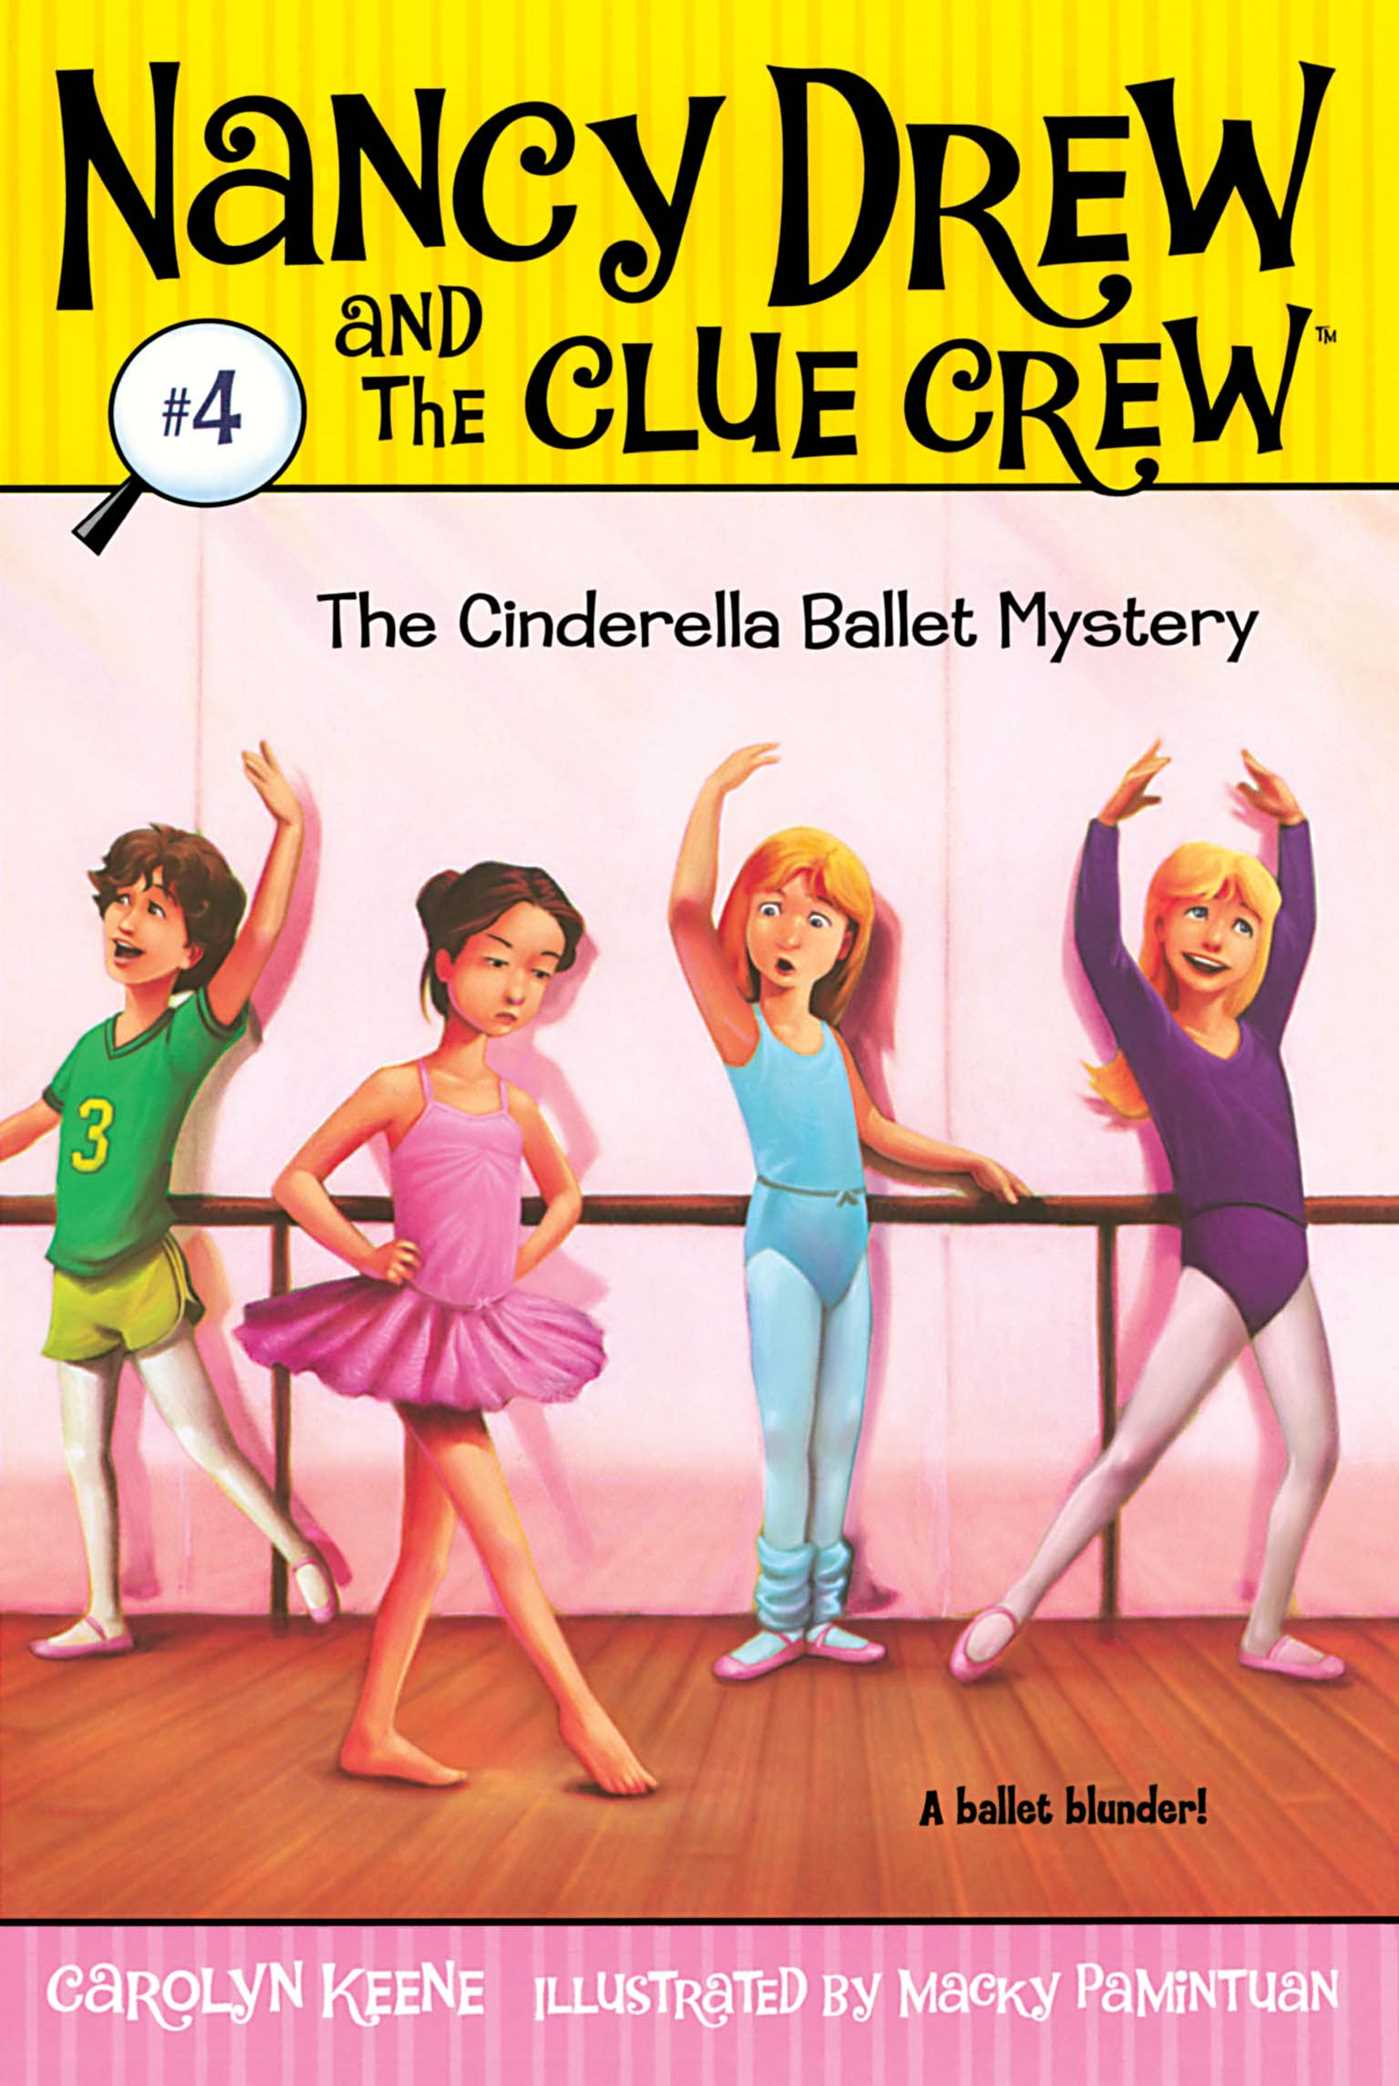 The Cinderella Ballet Mystery book cover